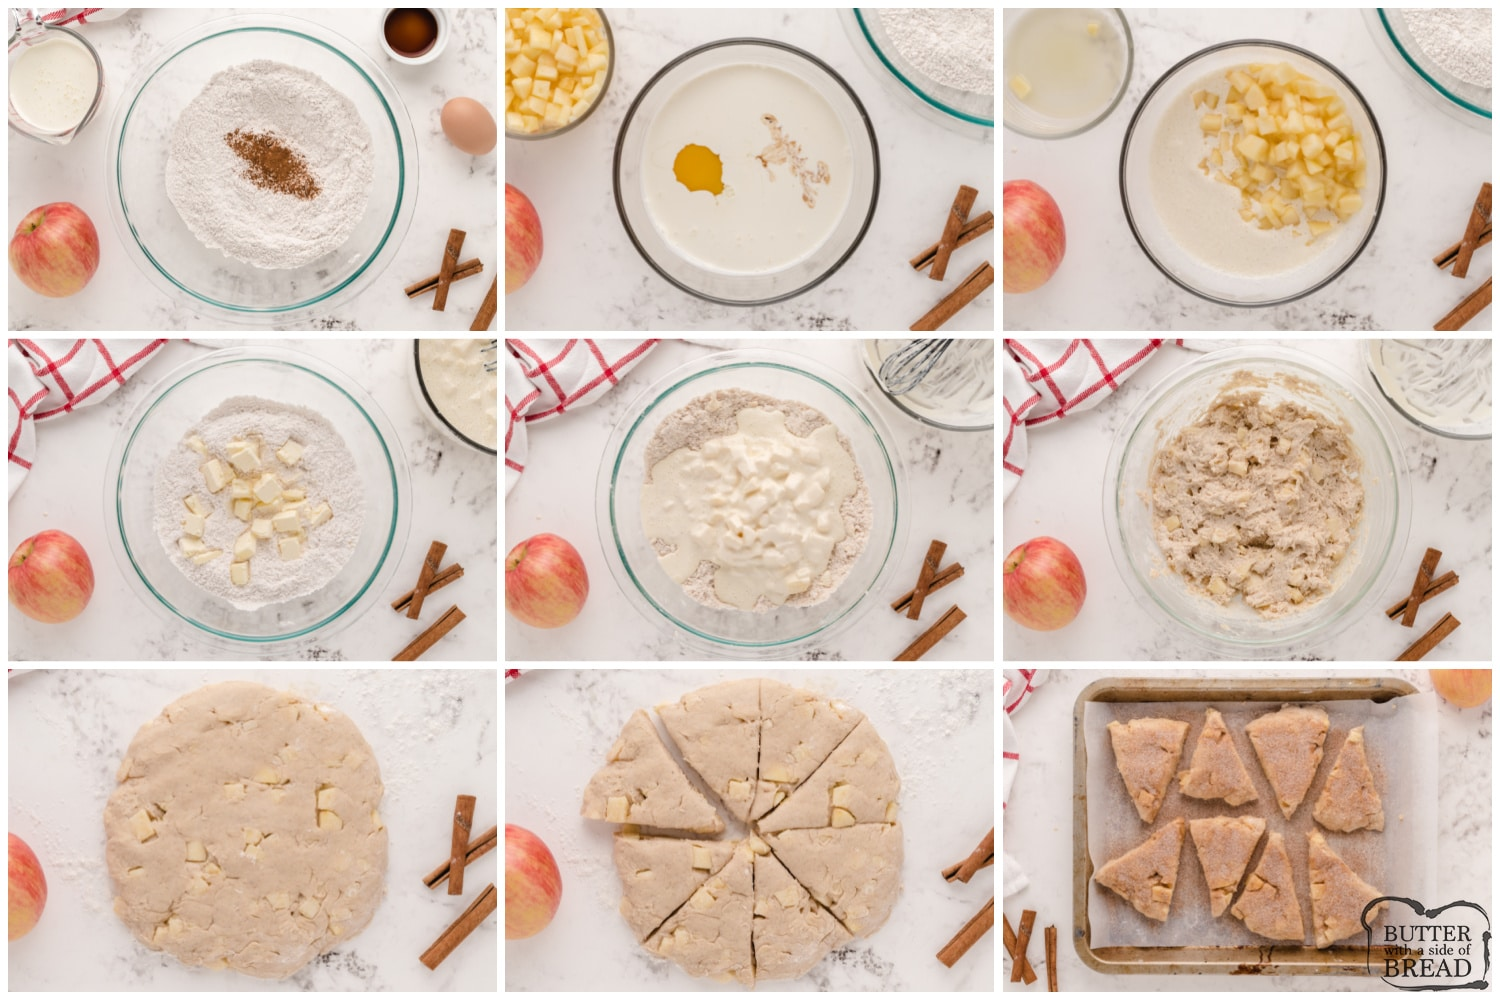 Step by step instructions on how to make Apple Cinnamon Scones